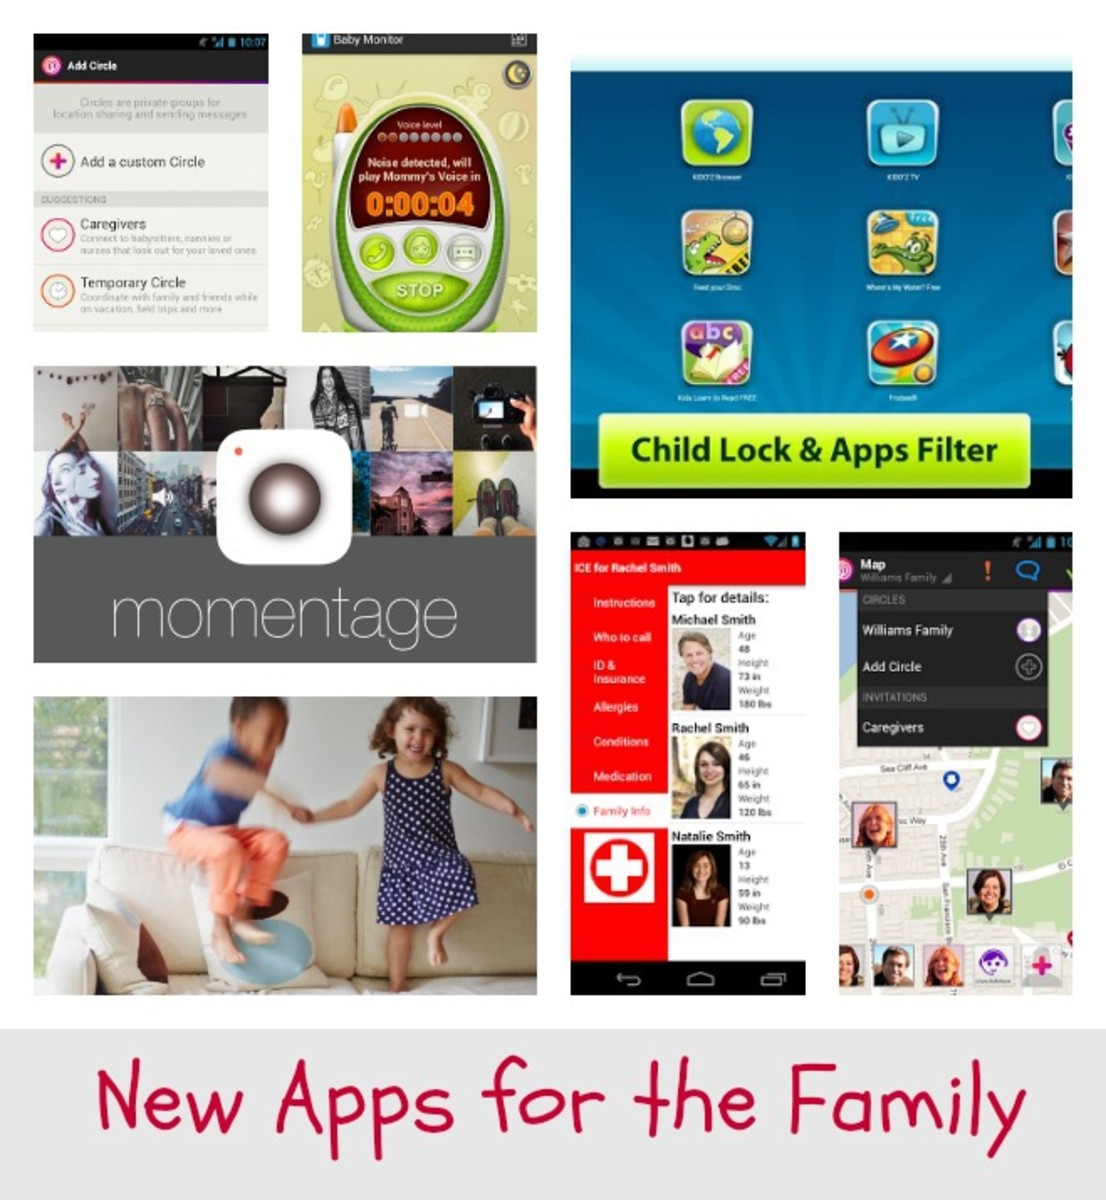 New Apps for the Family